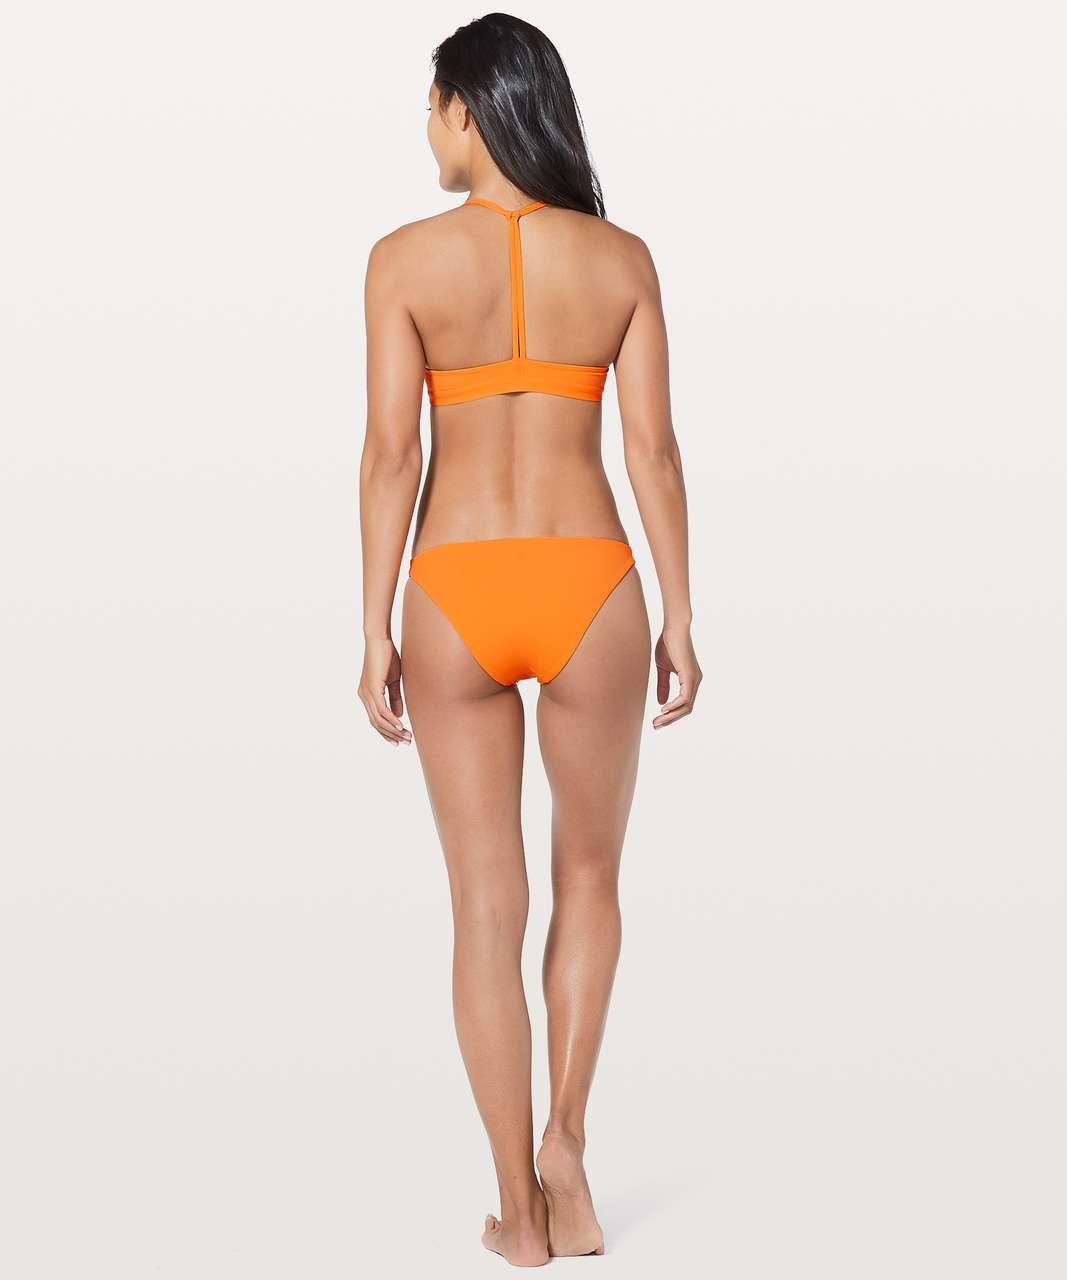 Lululemon Uncharted Waters Bottom - Vivid Amber